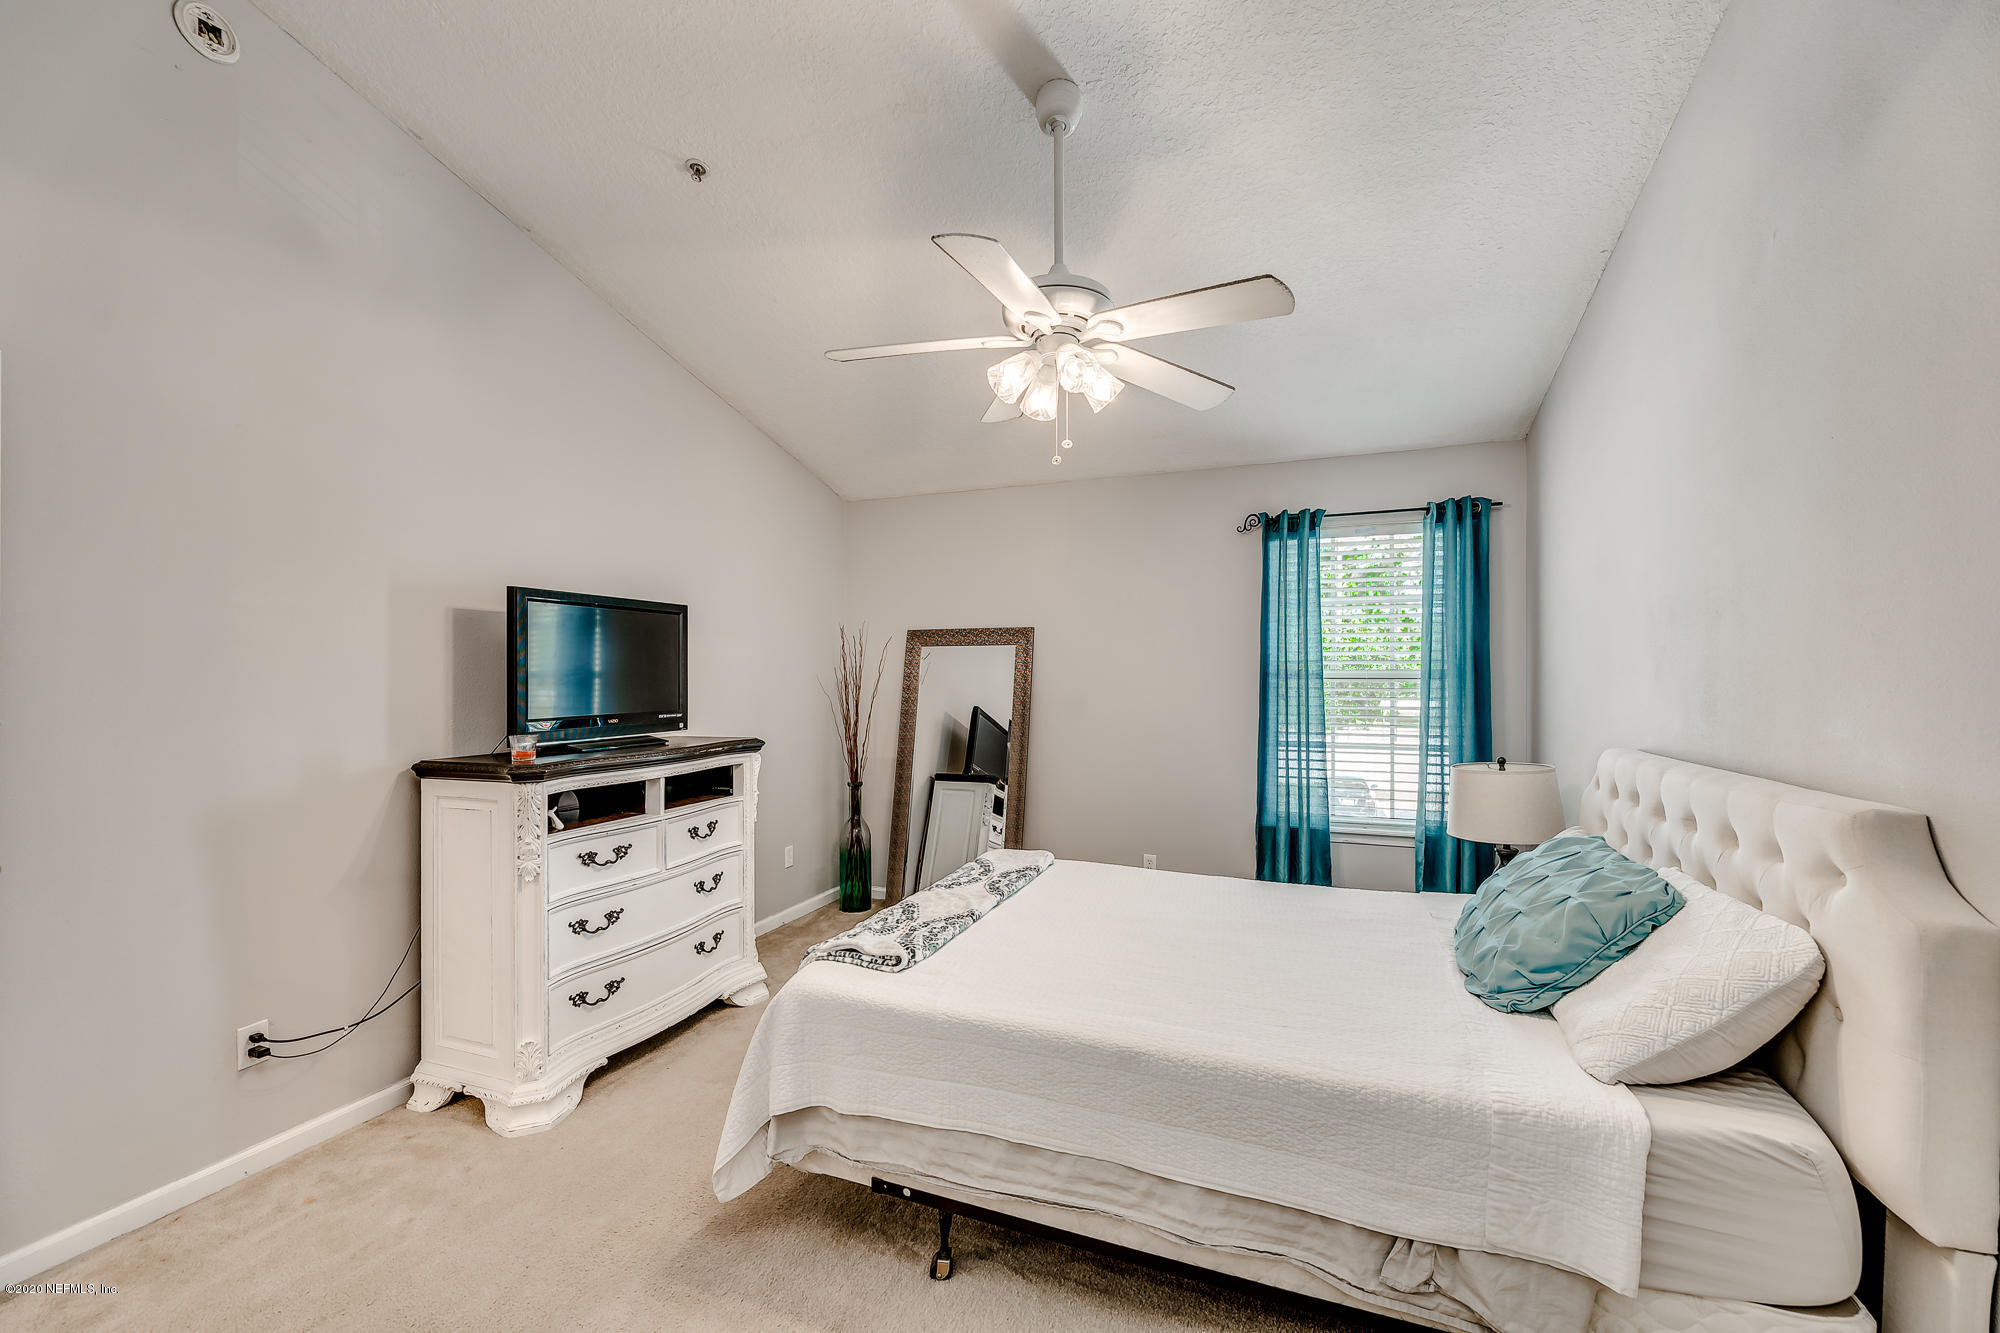 575 OAKLEAF PLANTATION, ORANGE PARK, FLORIDA 32065, 1 Bedroom Bedrooms, ,1 BathroomBathrooms,Residential,For sale,OAKLEAF PLANTATION,1066915